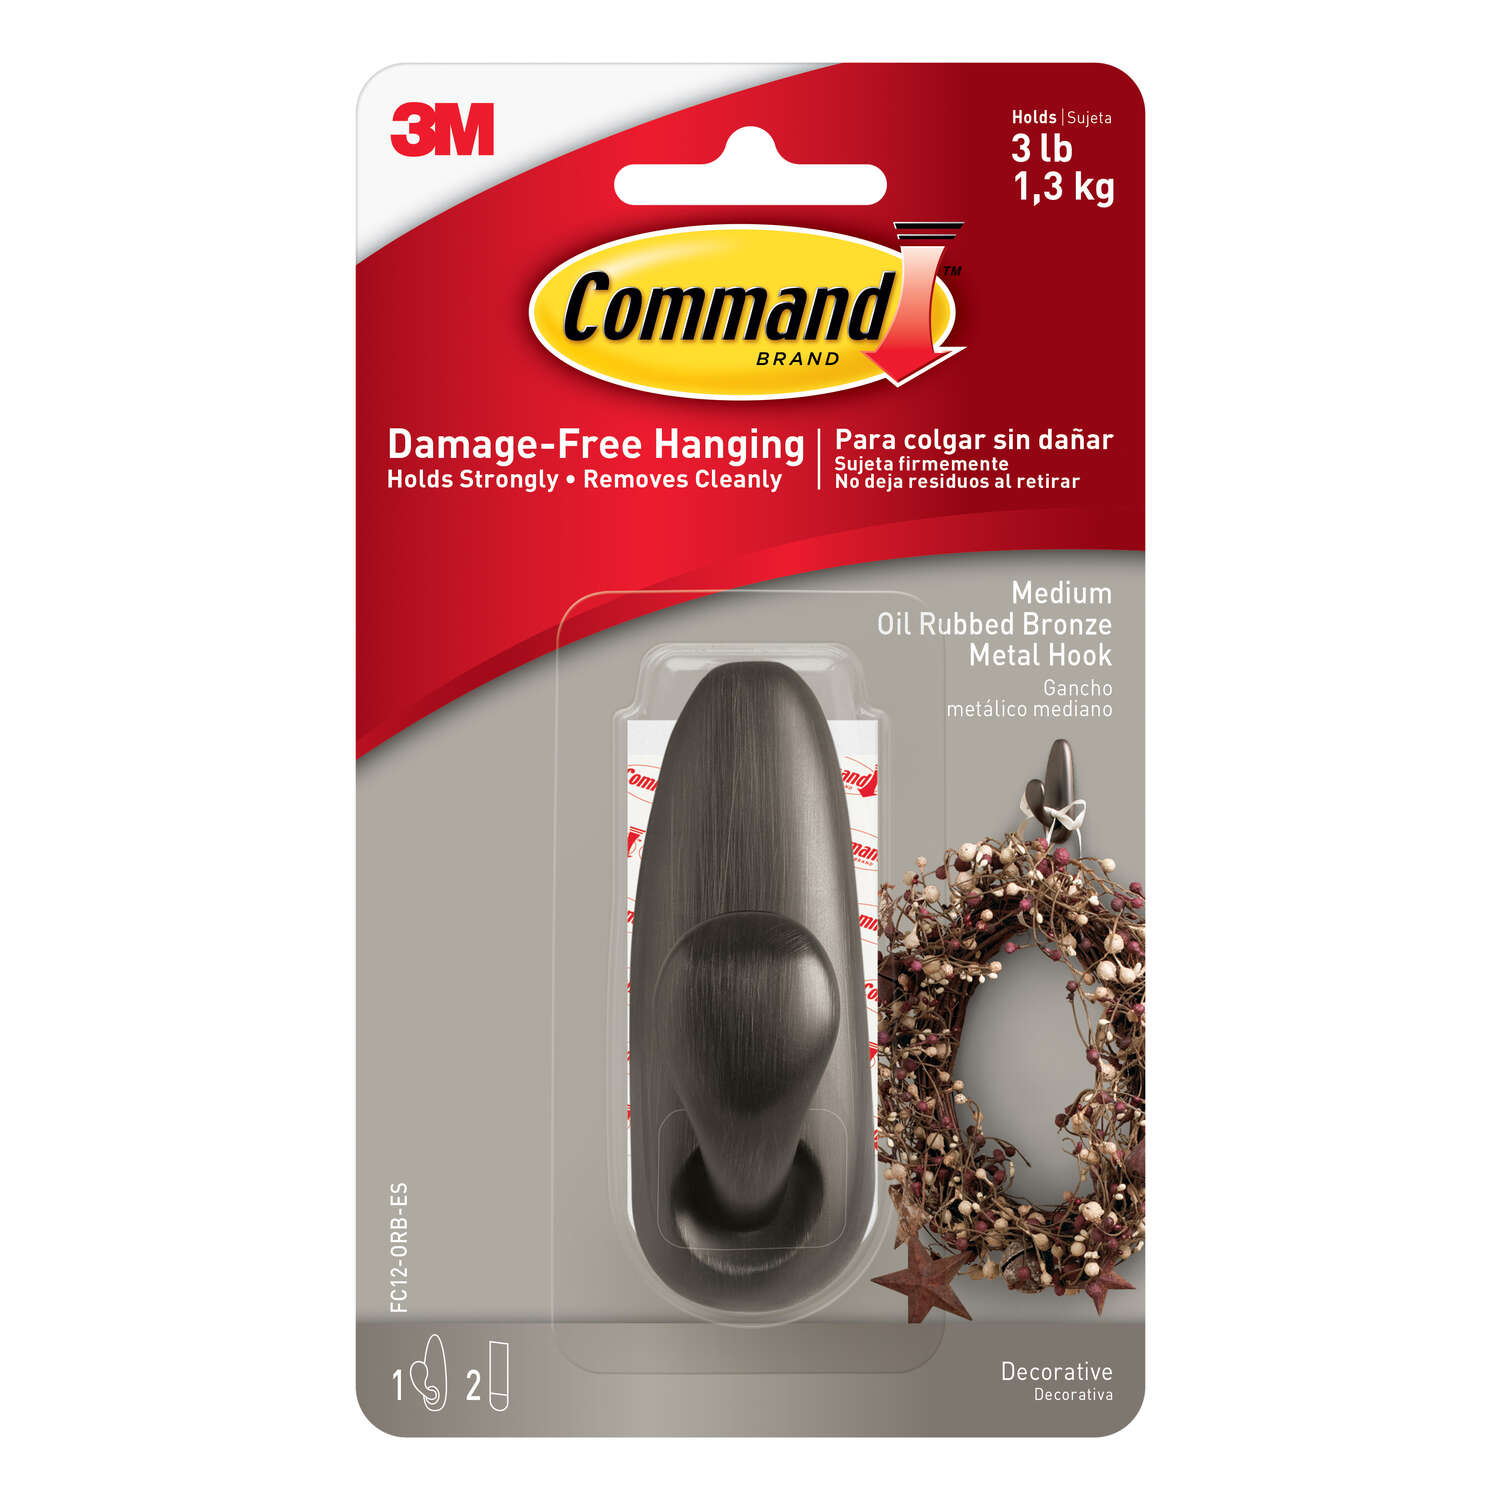 3M  Command  3-1/4 in. L Oil Rubbed Bronze  Metal  Medium  Coat/Hat Hook  3 lb. capacity 1 pk Foreve